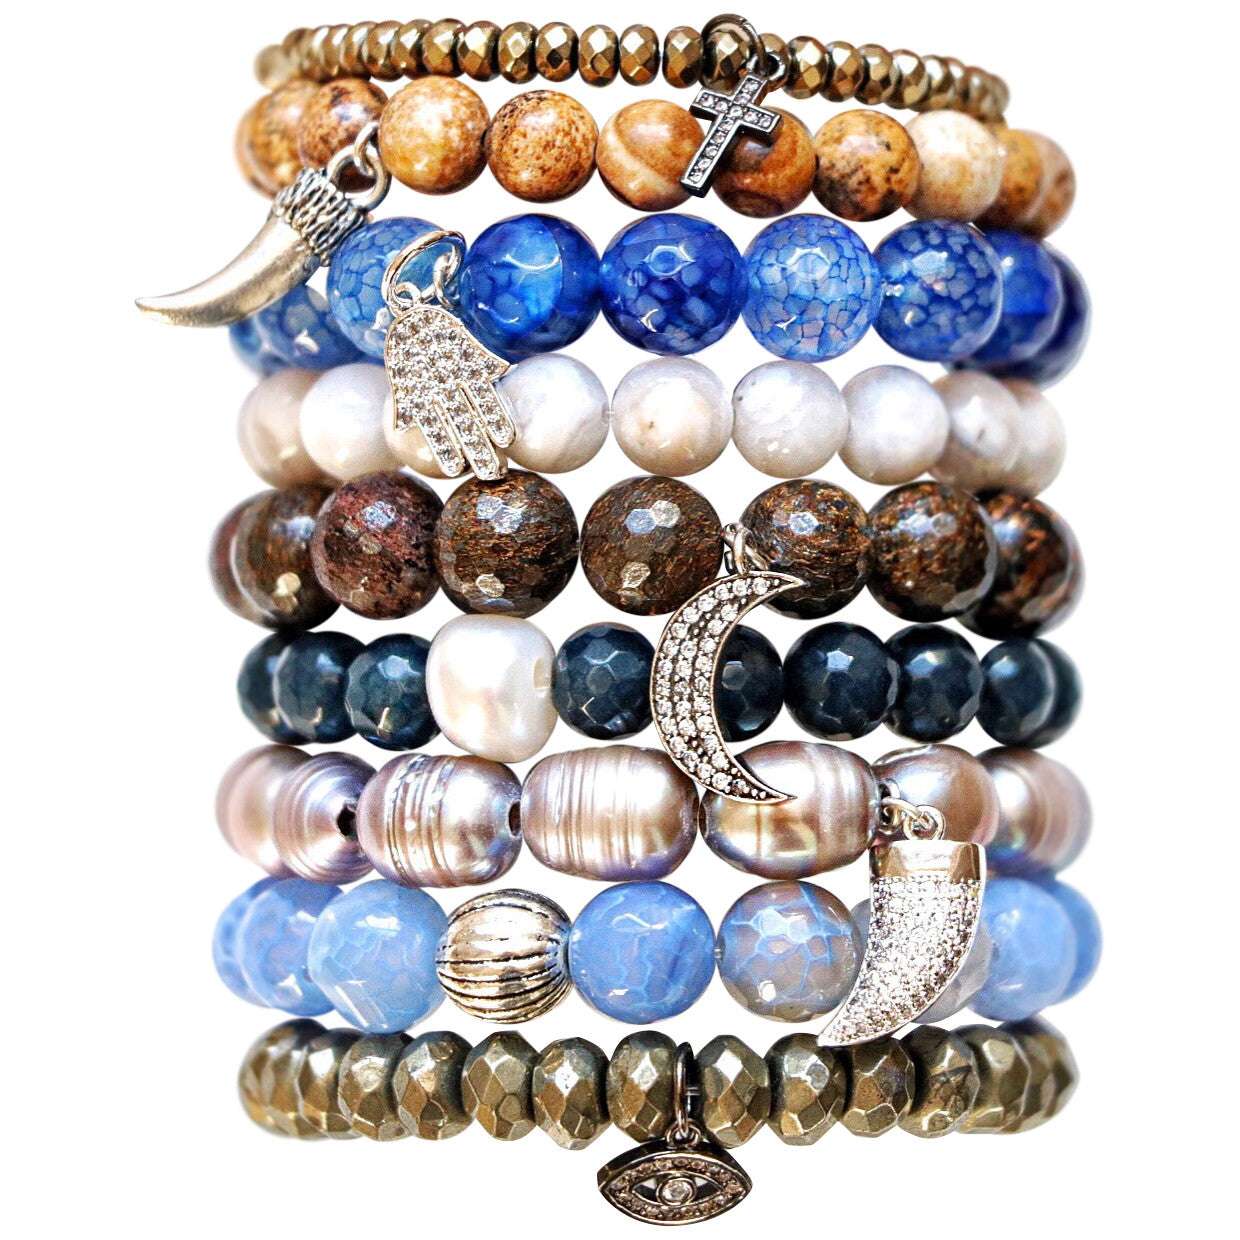 Molly Jane Designs Wooden Prayer Bead Charm Bracelet